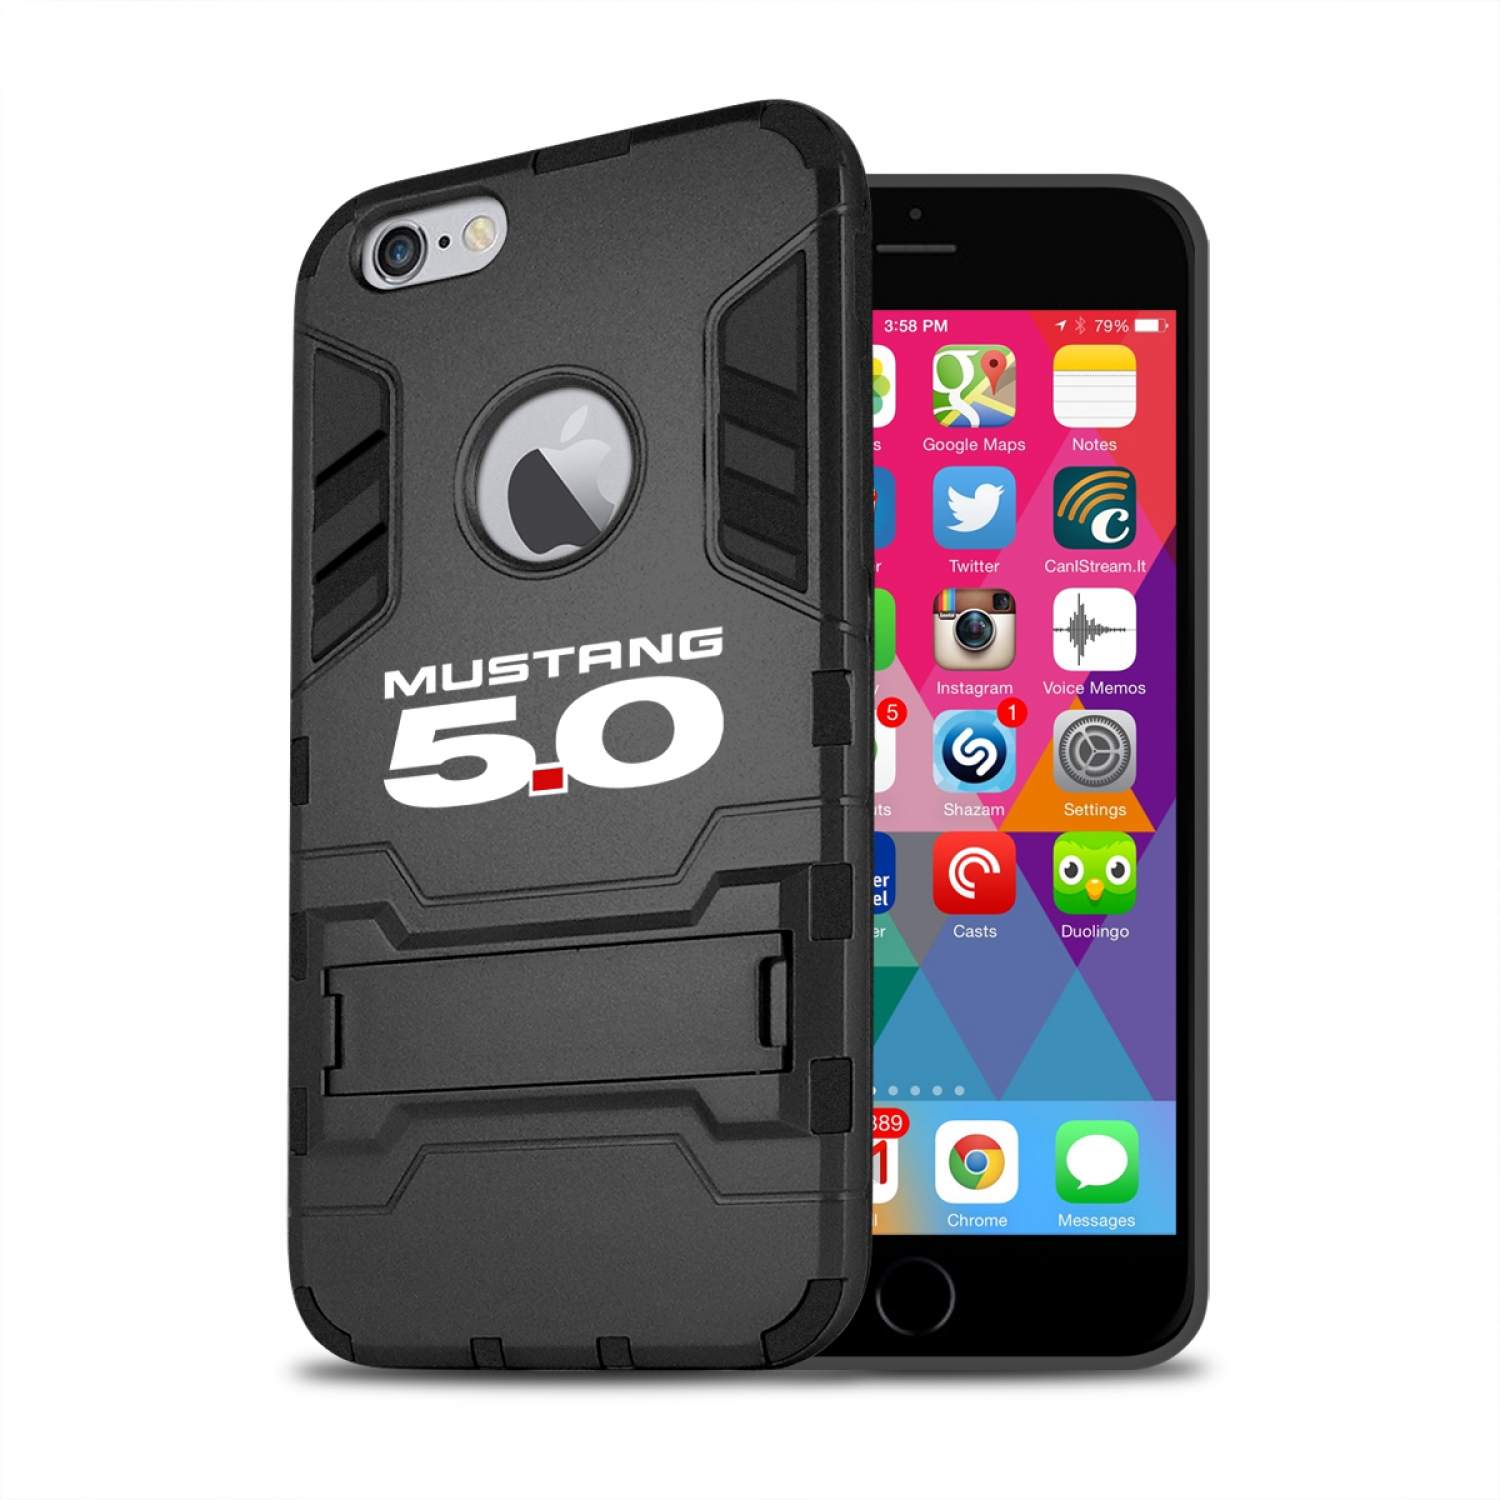 Ford Mustang 5.0 iPhone 6 6s Shockproof TPU ABS Hybrid Black Phone Case